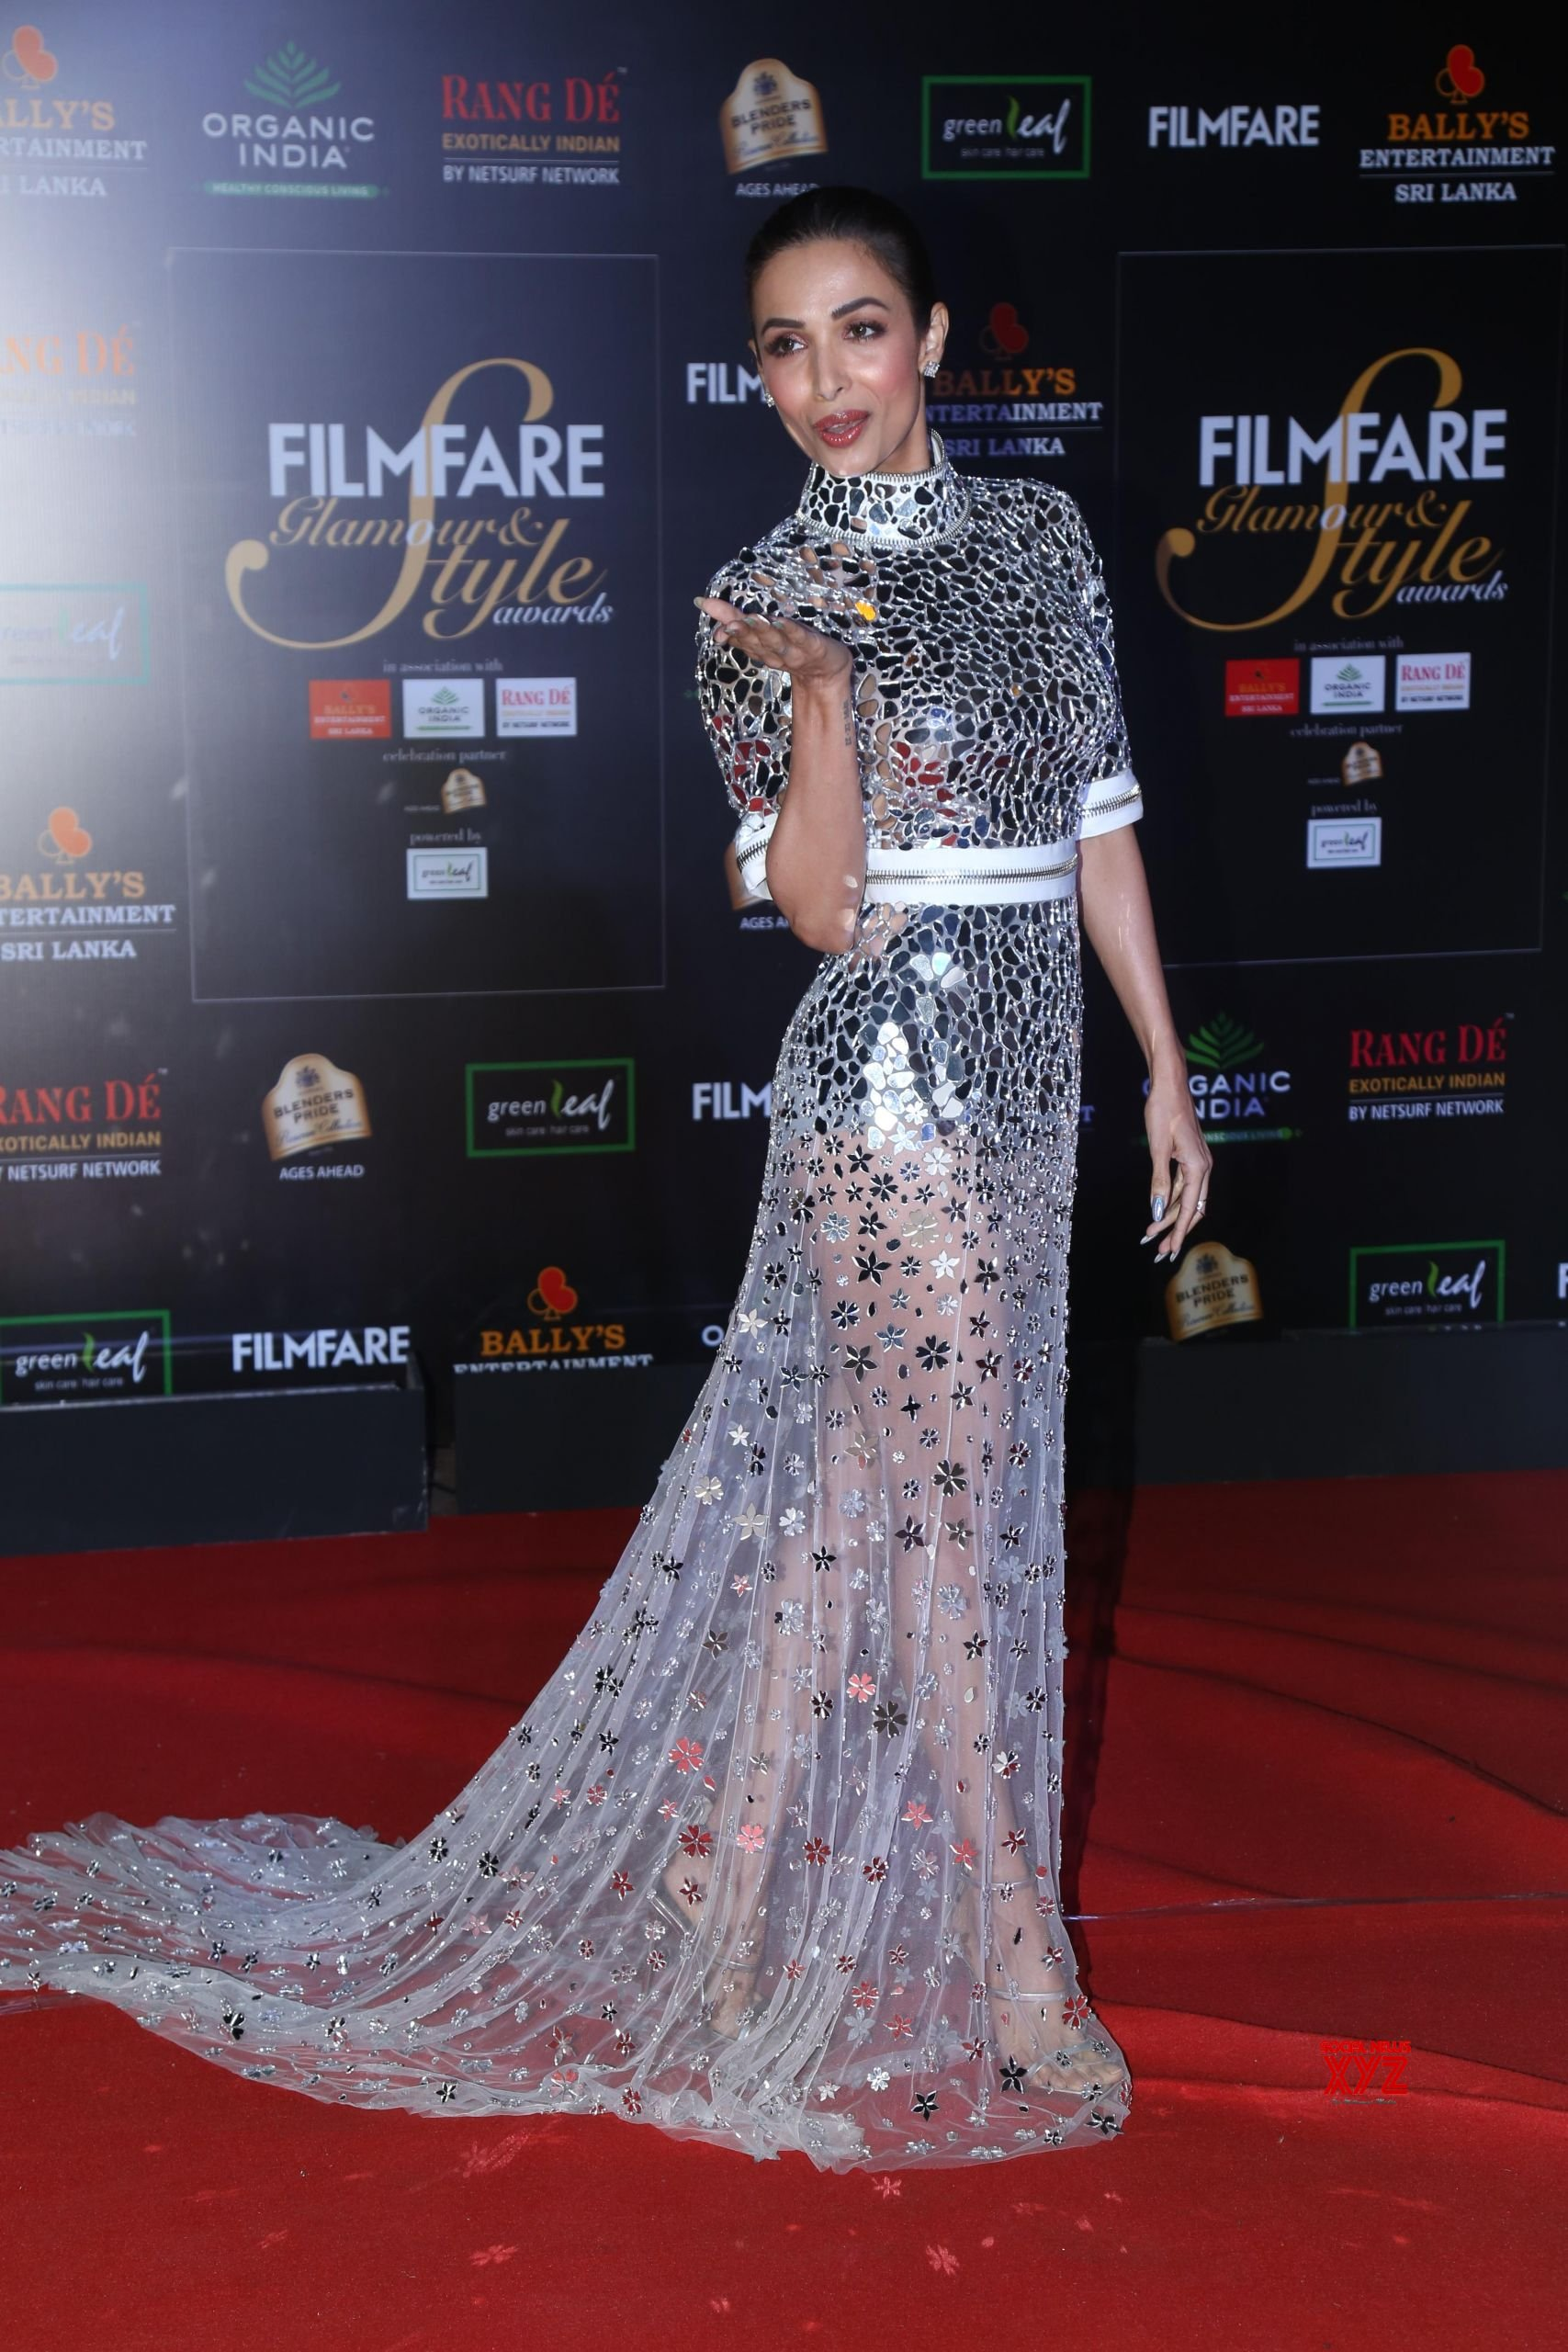 Actress Malaika Arora Hot HD Stills From Filmfare Glamour And Style Awards 2019 Red Carpet